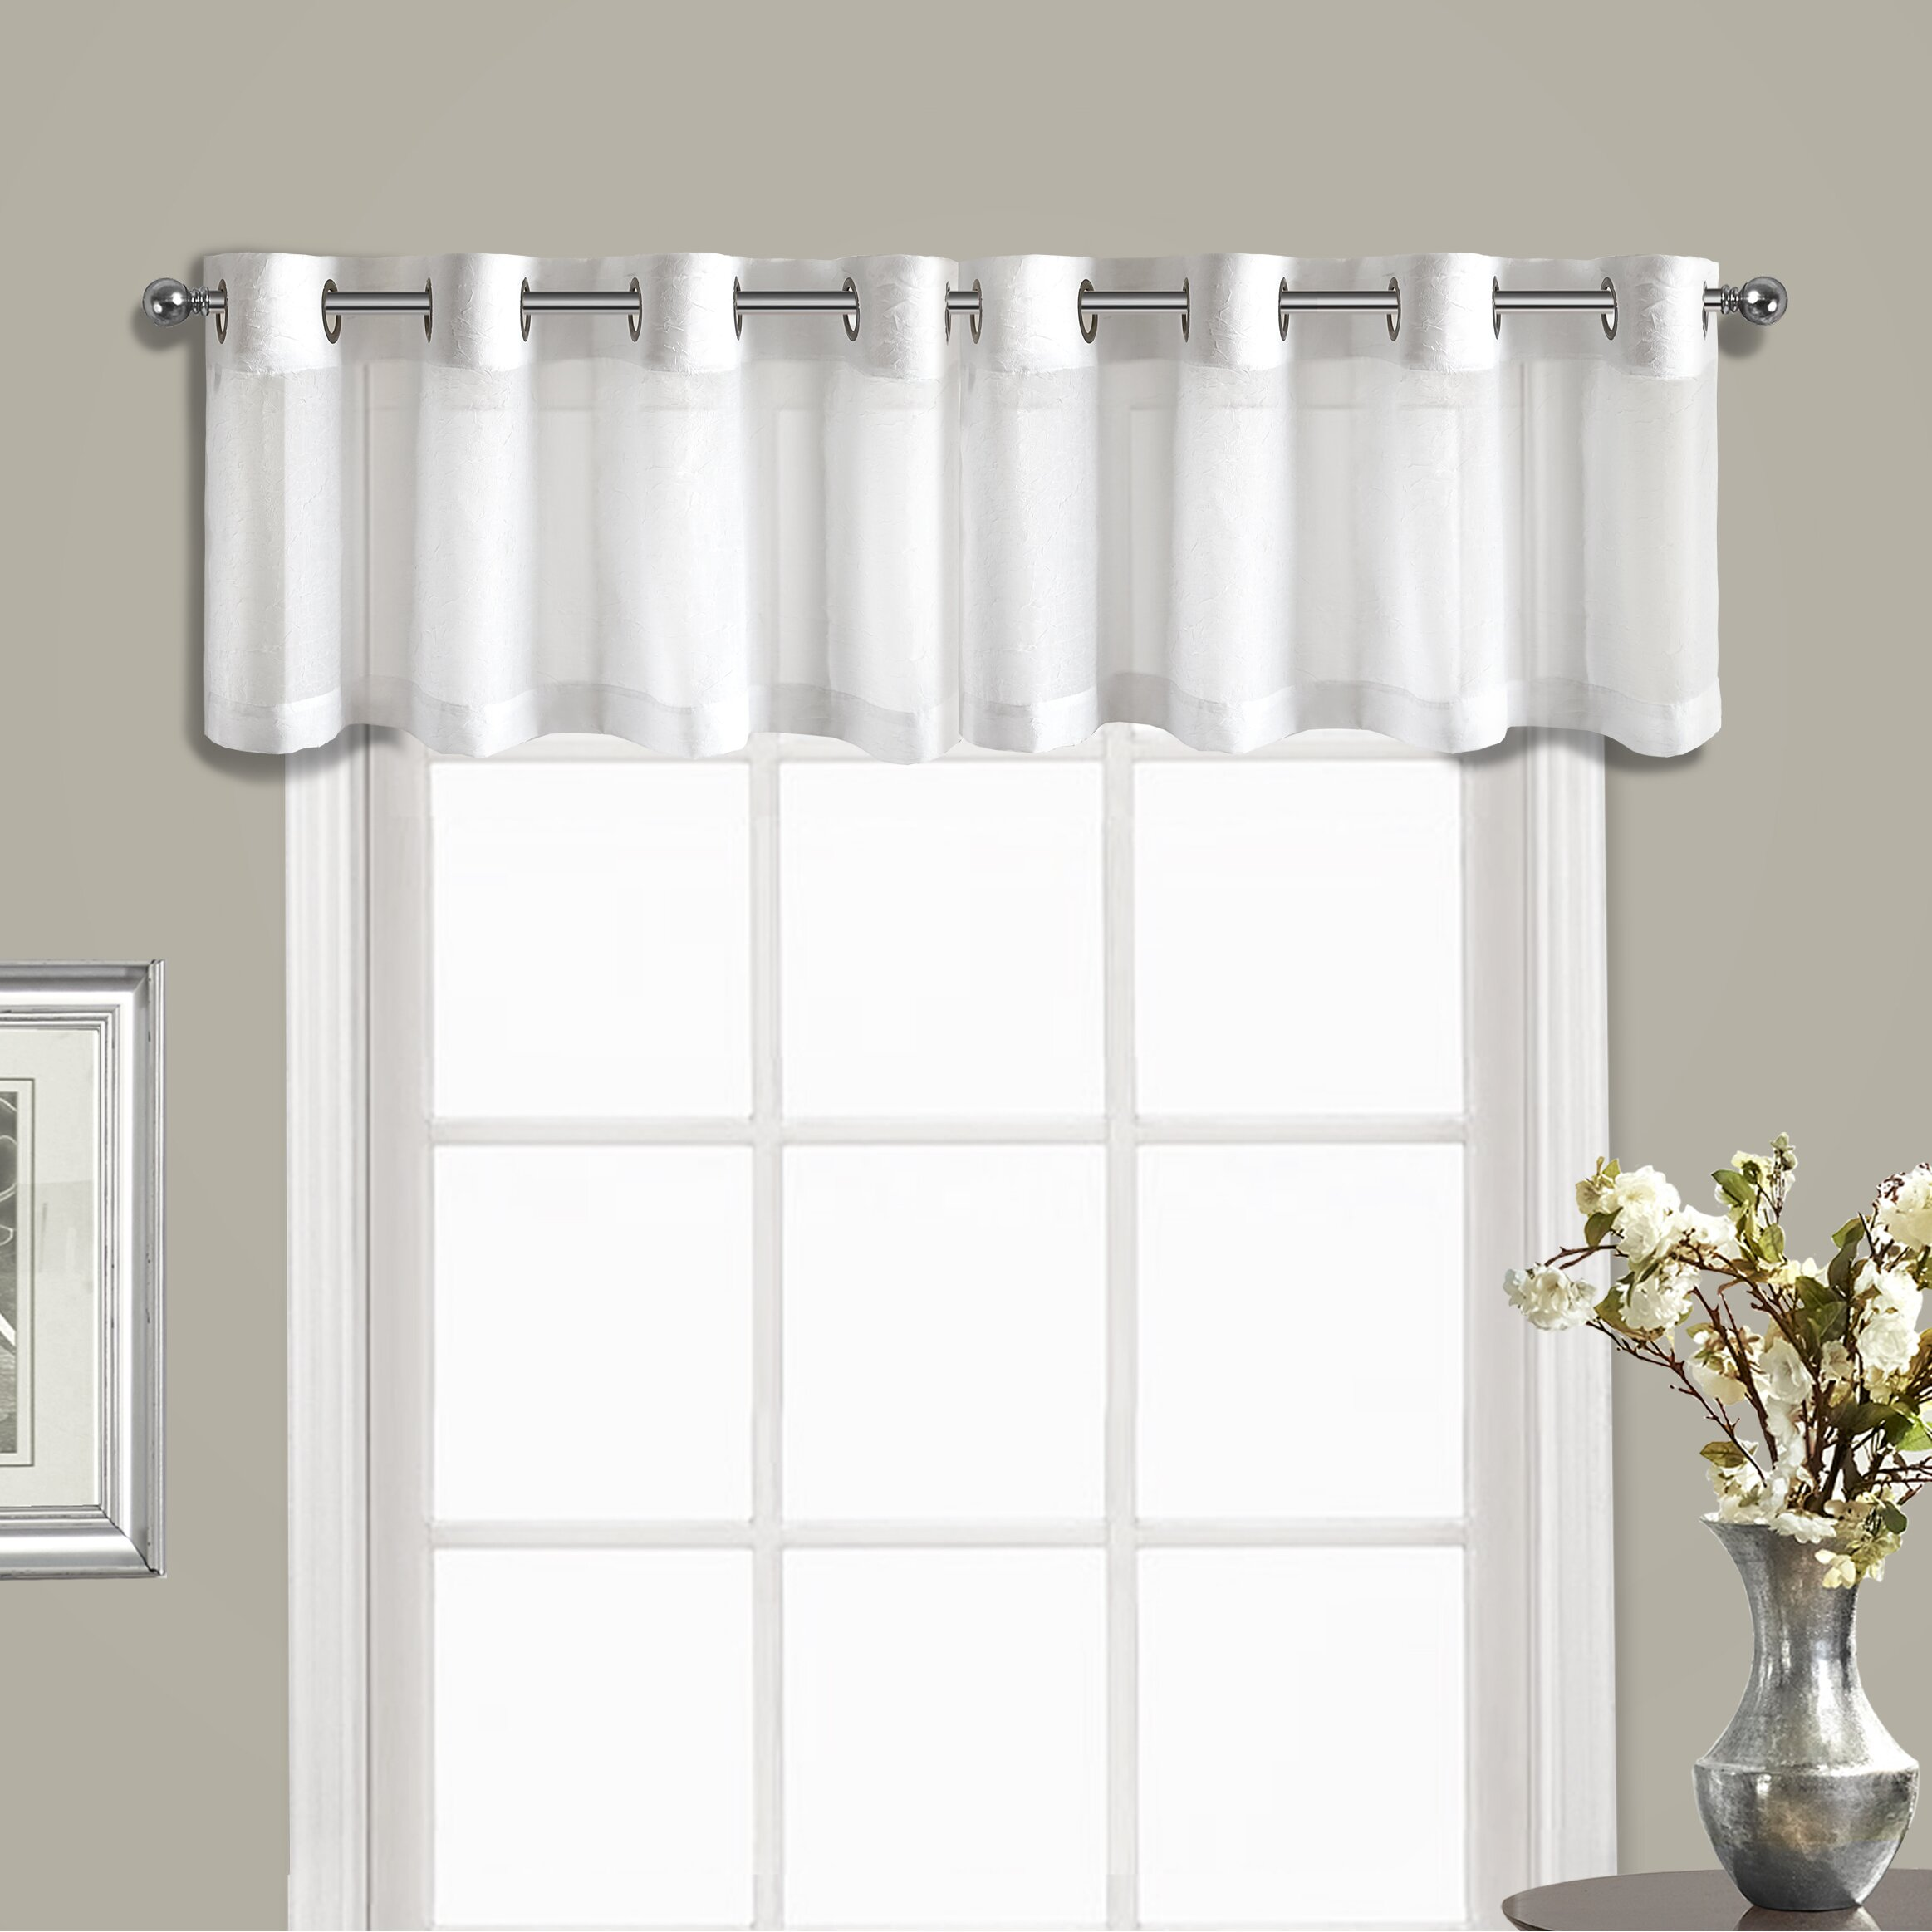 Grommet Kitchen Curtains: United Curtain Co. Venetian Topper Curtain Valance